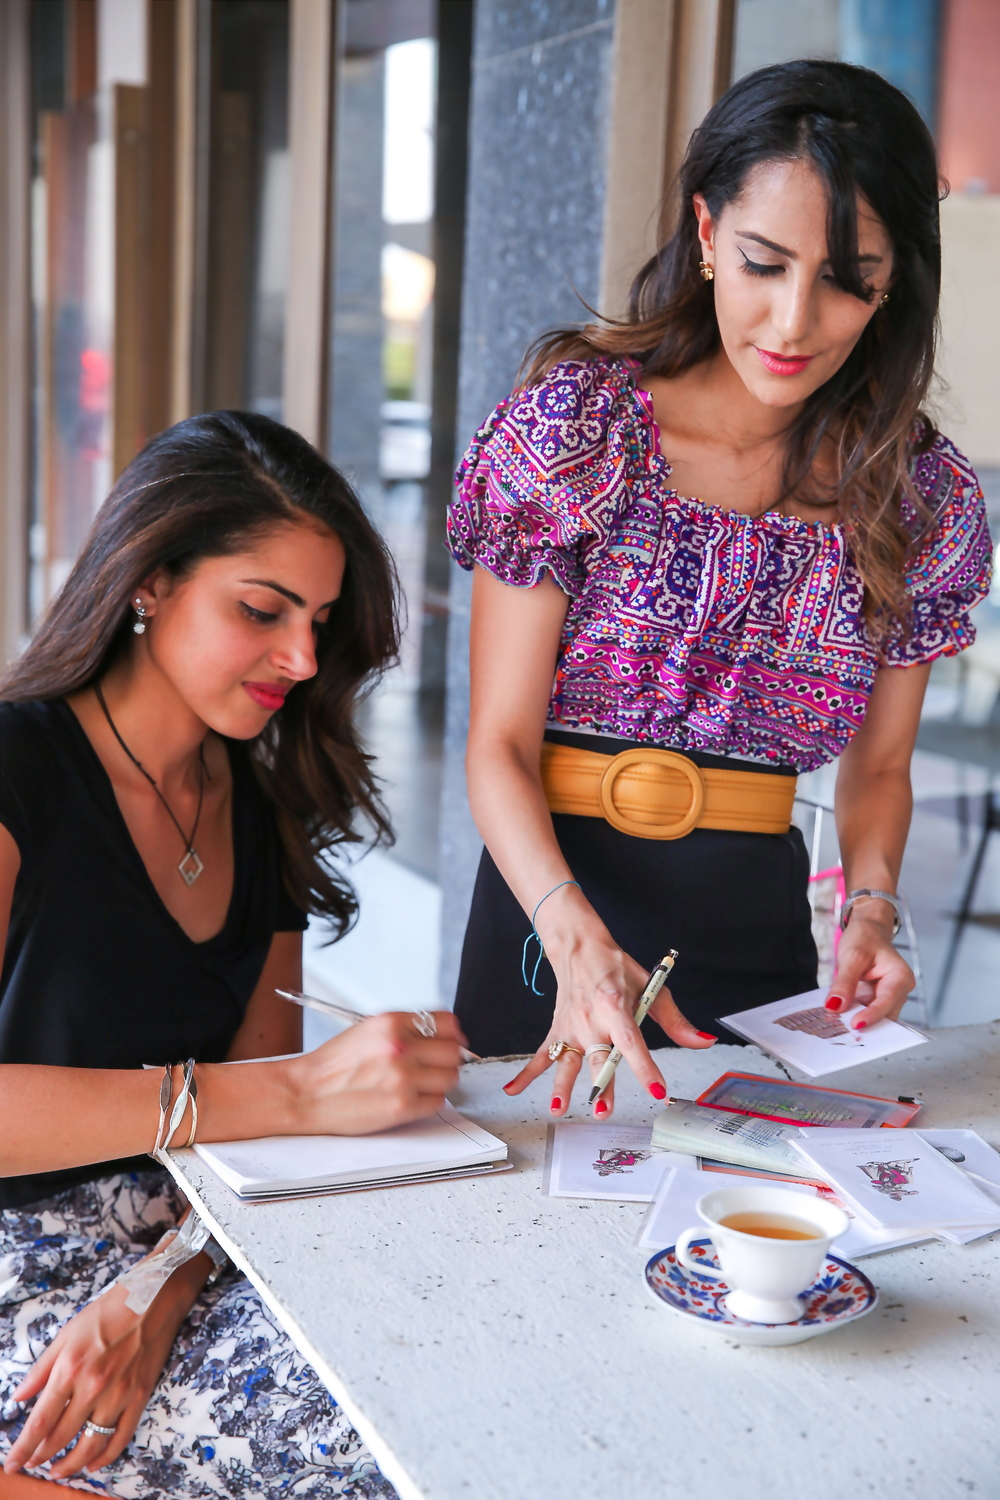 Alaa & Danah at Work - Co-founders of The Yard